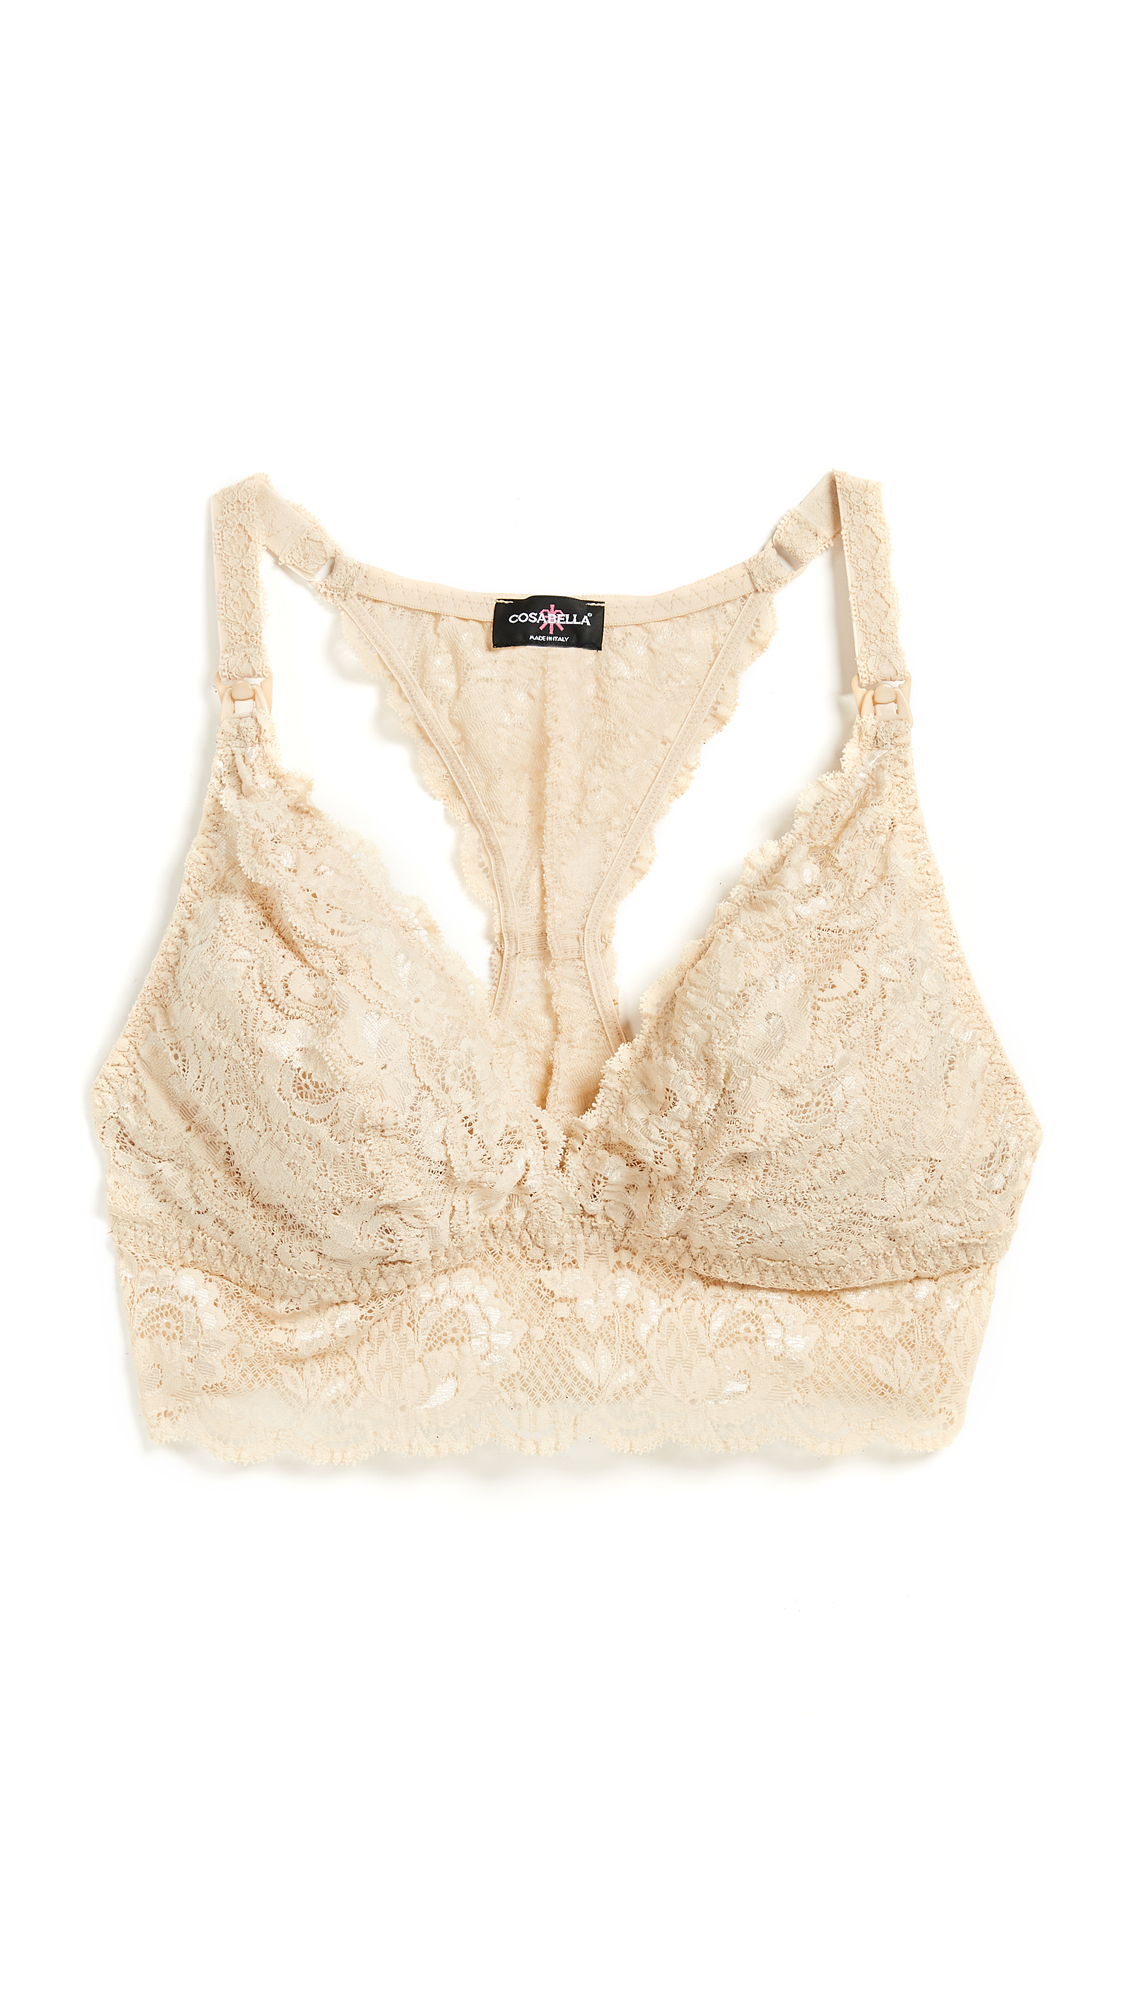 Cosabella Never Say Never Maternity Bralette